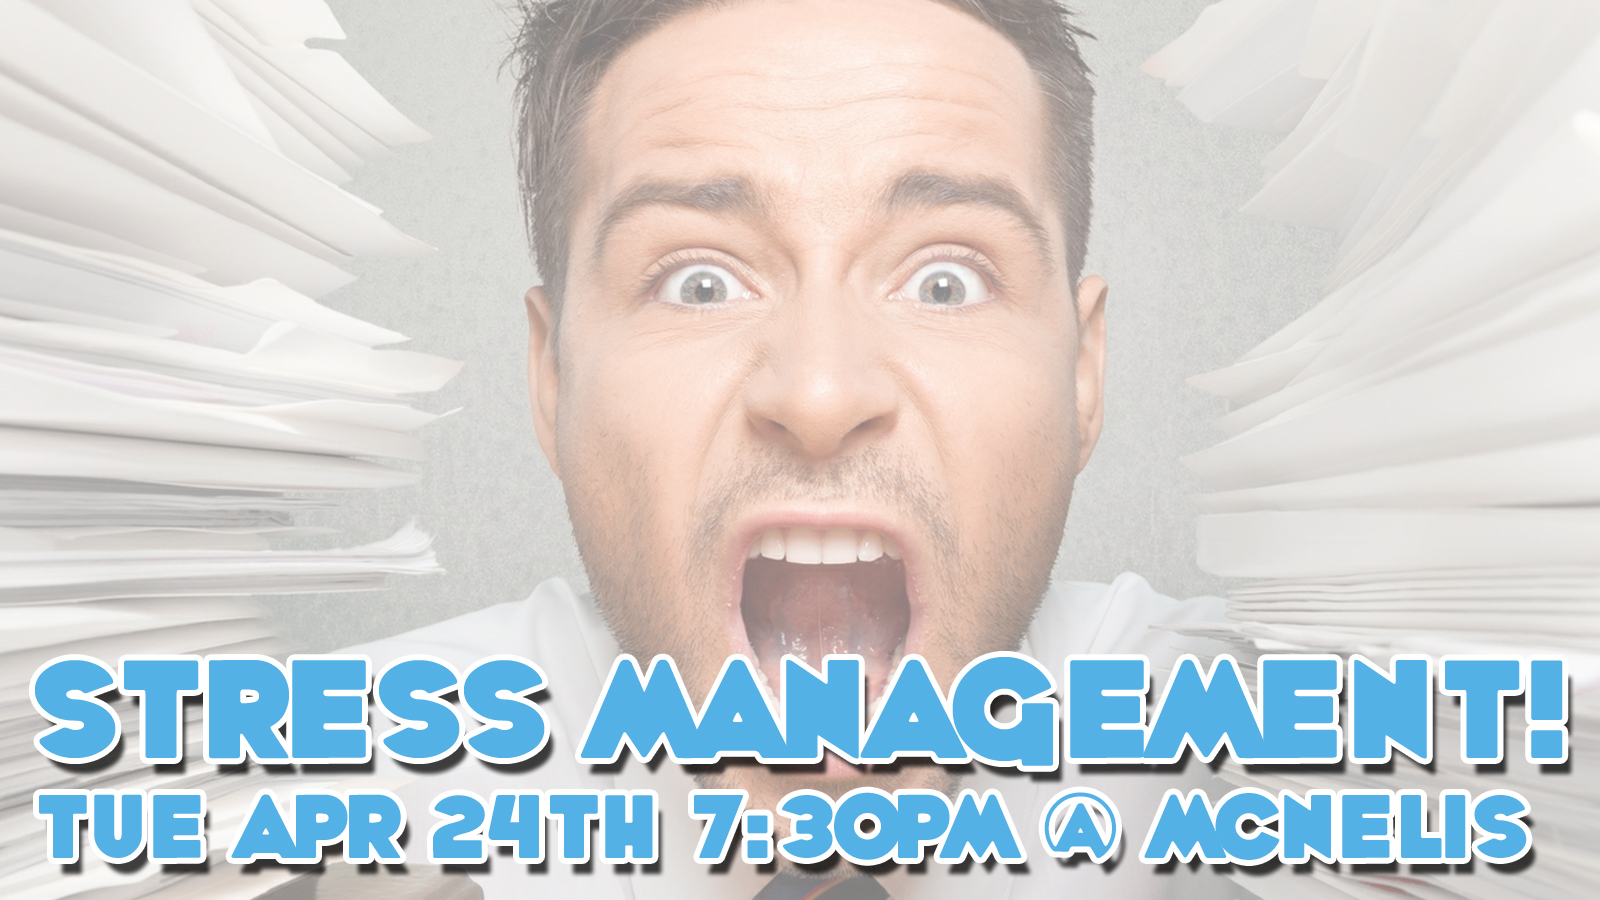 Banner of Stress Management Workshop Event. Tuesday April 24, 2018, 7:30pm – 9:00pm @ McNelis Commons